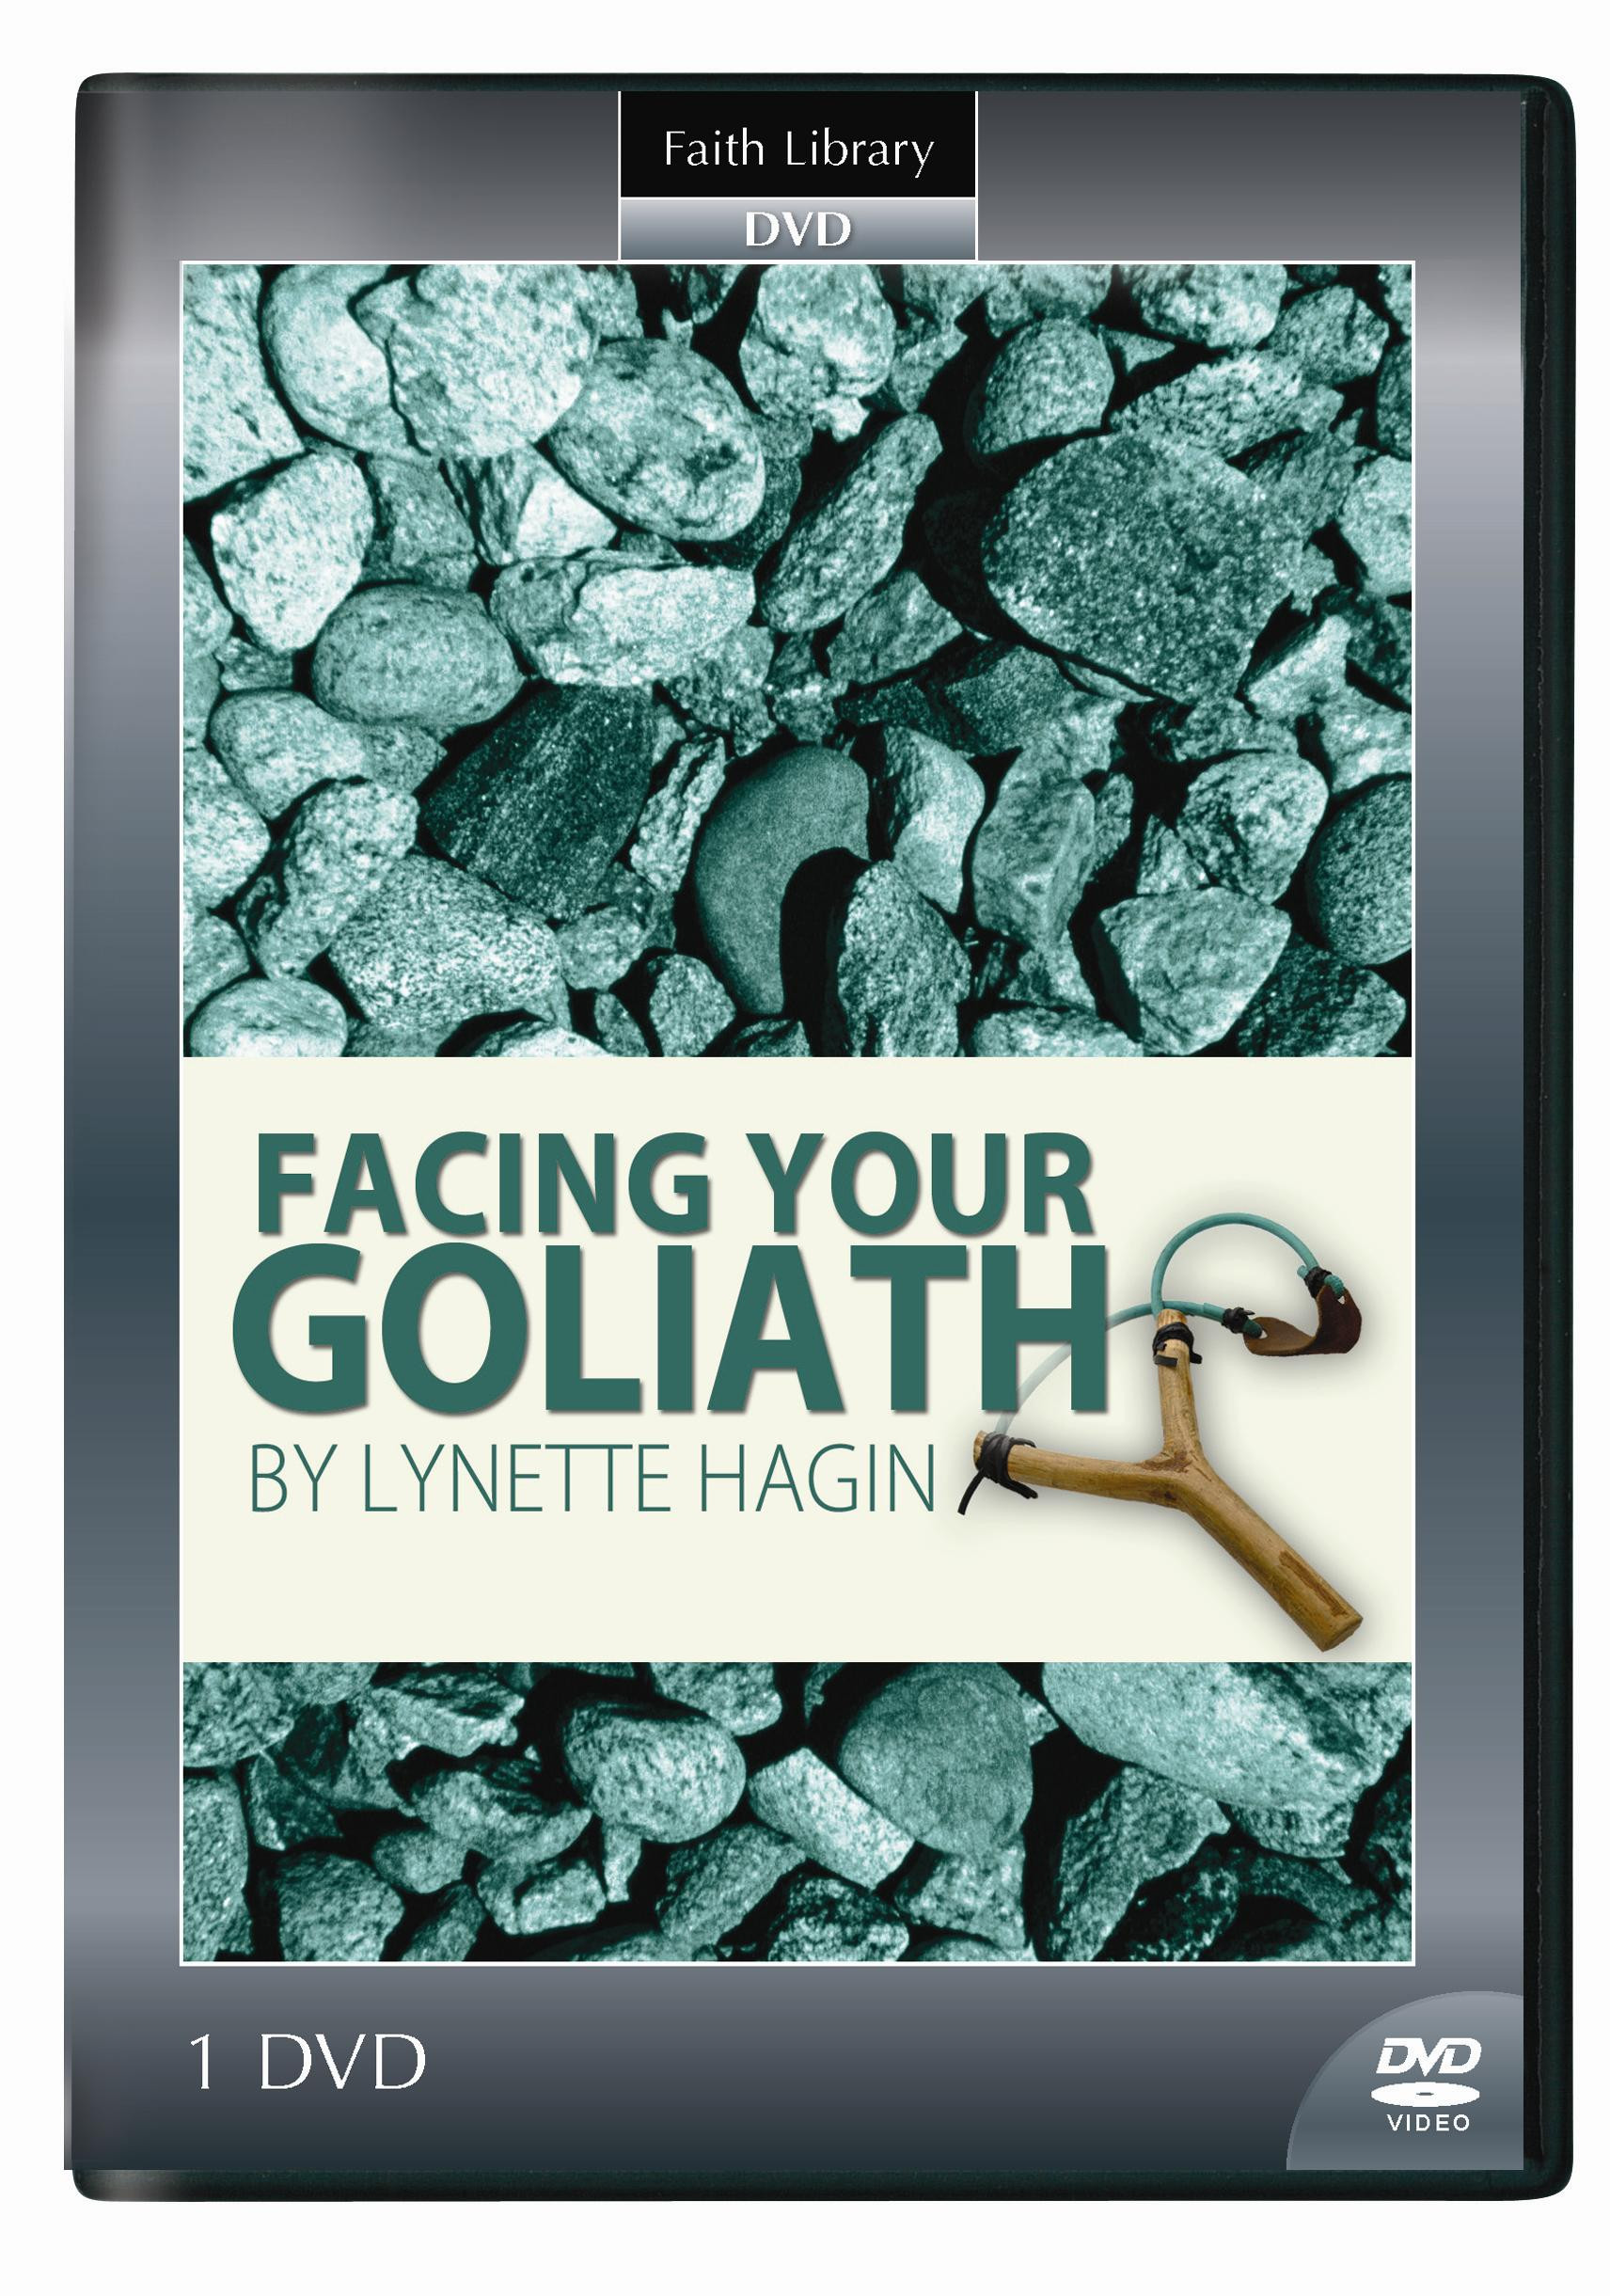 Facing Your Goliath (1 DVD)